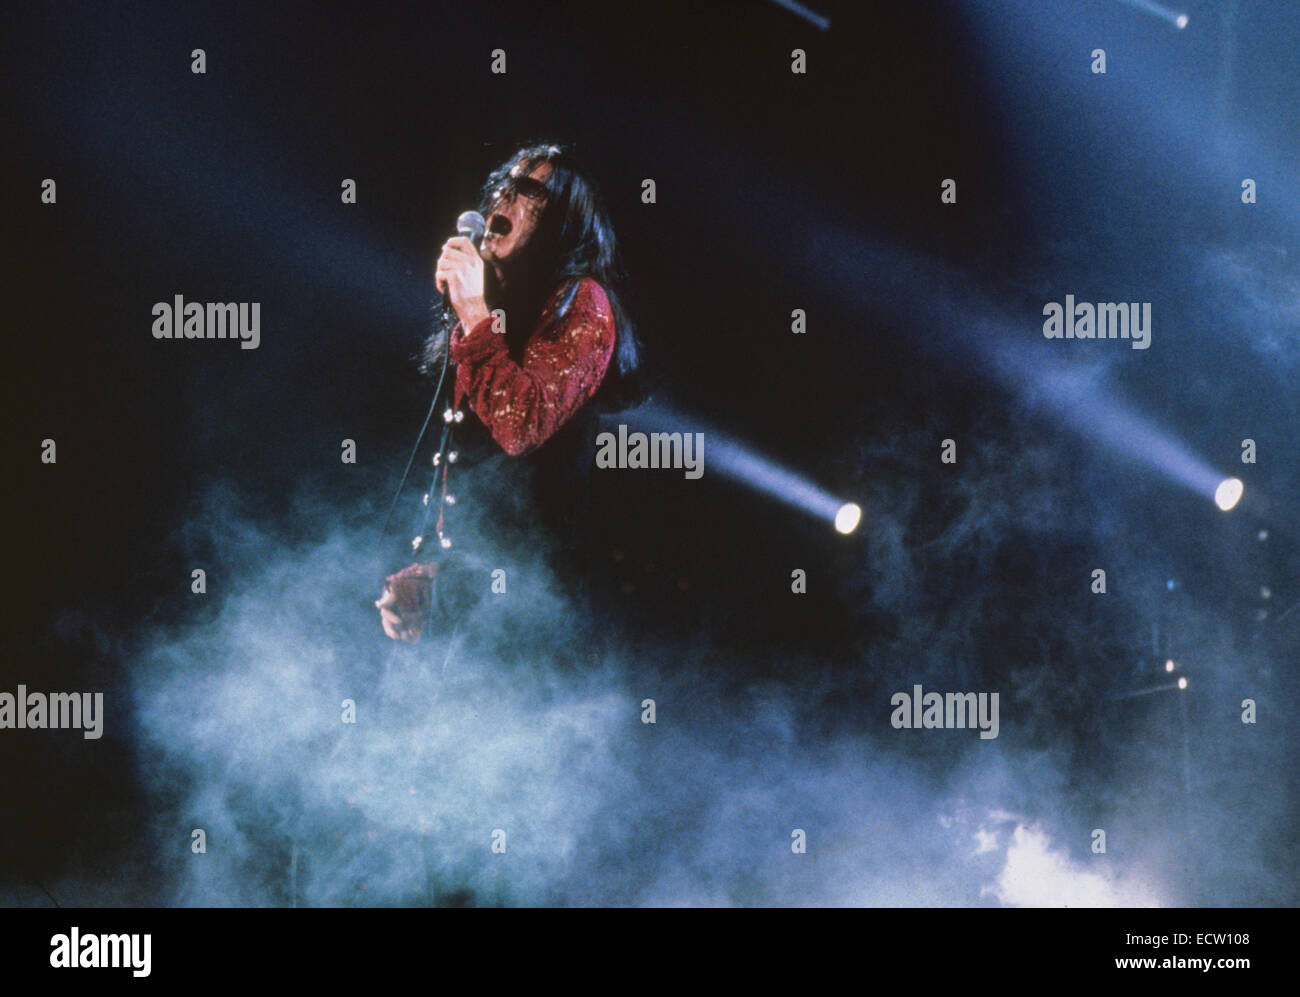 THE CULT UK rock group with Ian Astbury in 1991 - Stock Image